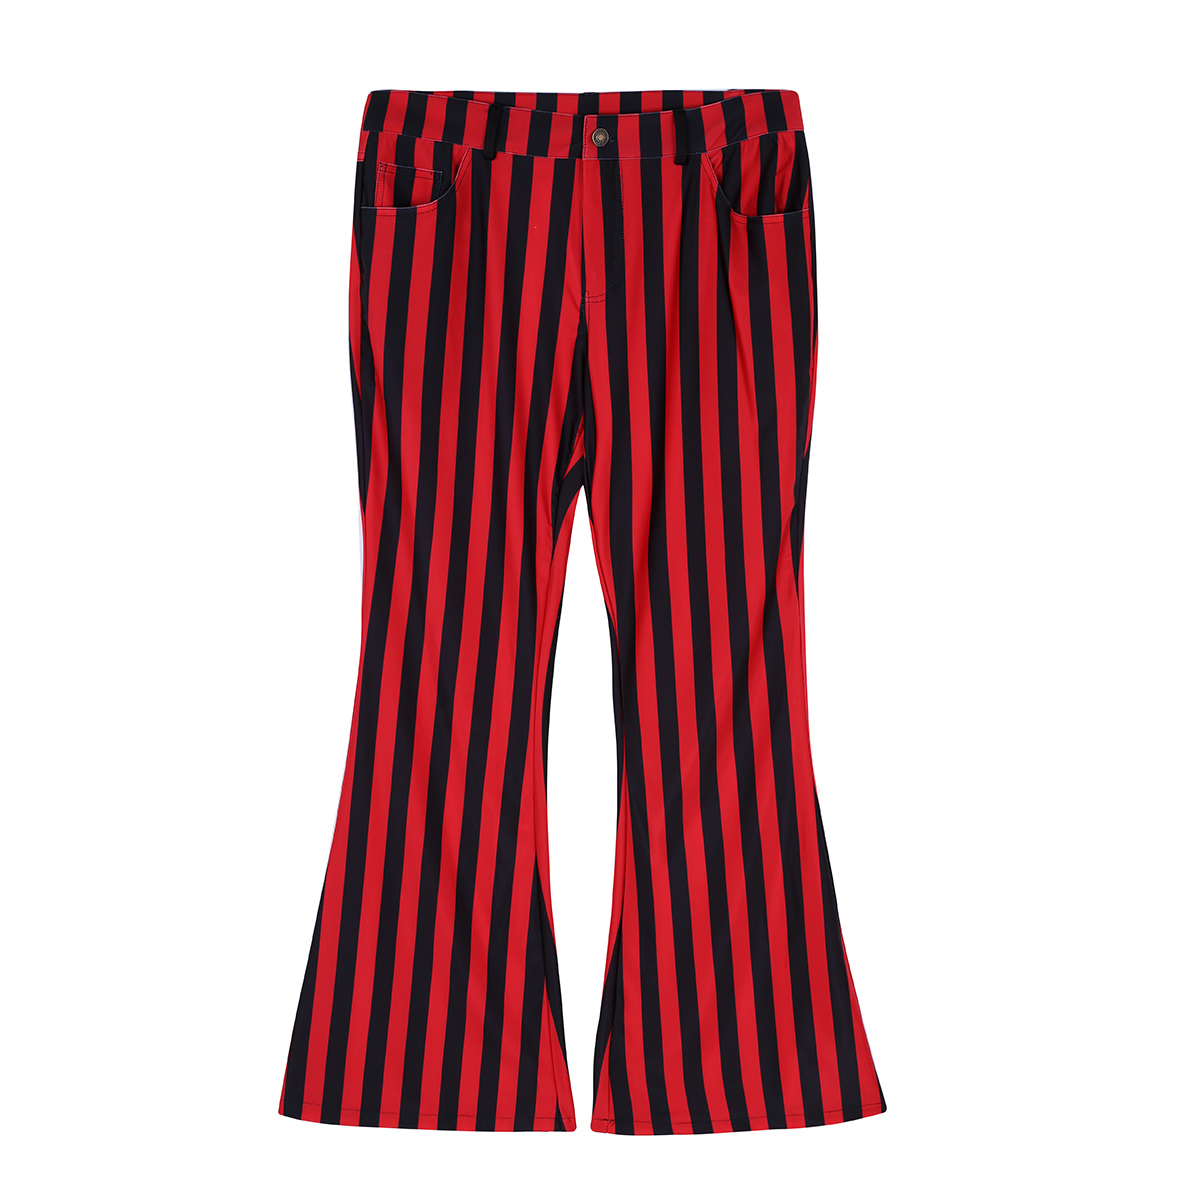 Halloween Party Costume for Men Vintage Stripe Pant Male Long Pant Stretch Bell Bottom Trousers Western Streetwear Clothes Homme 17